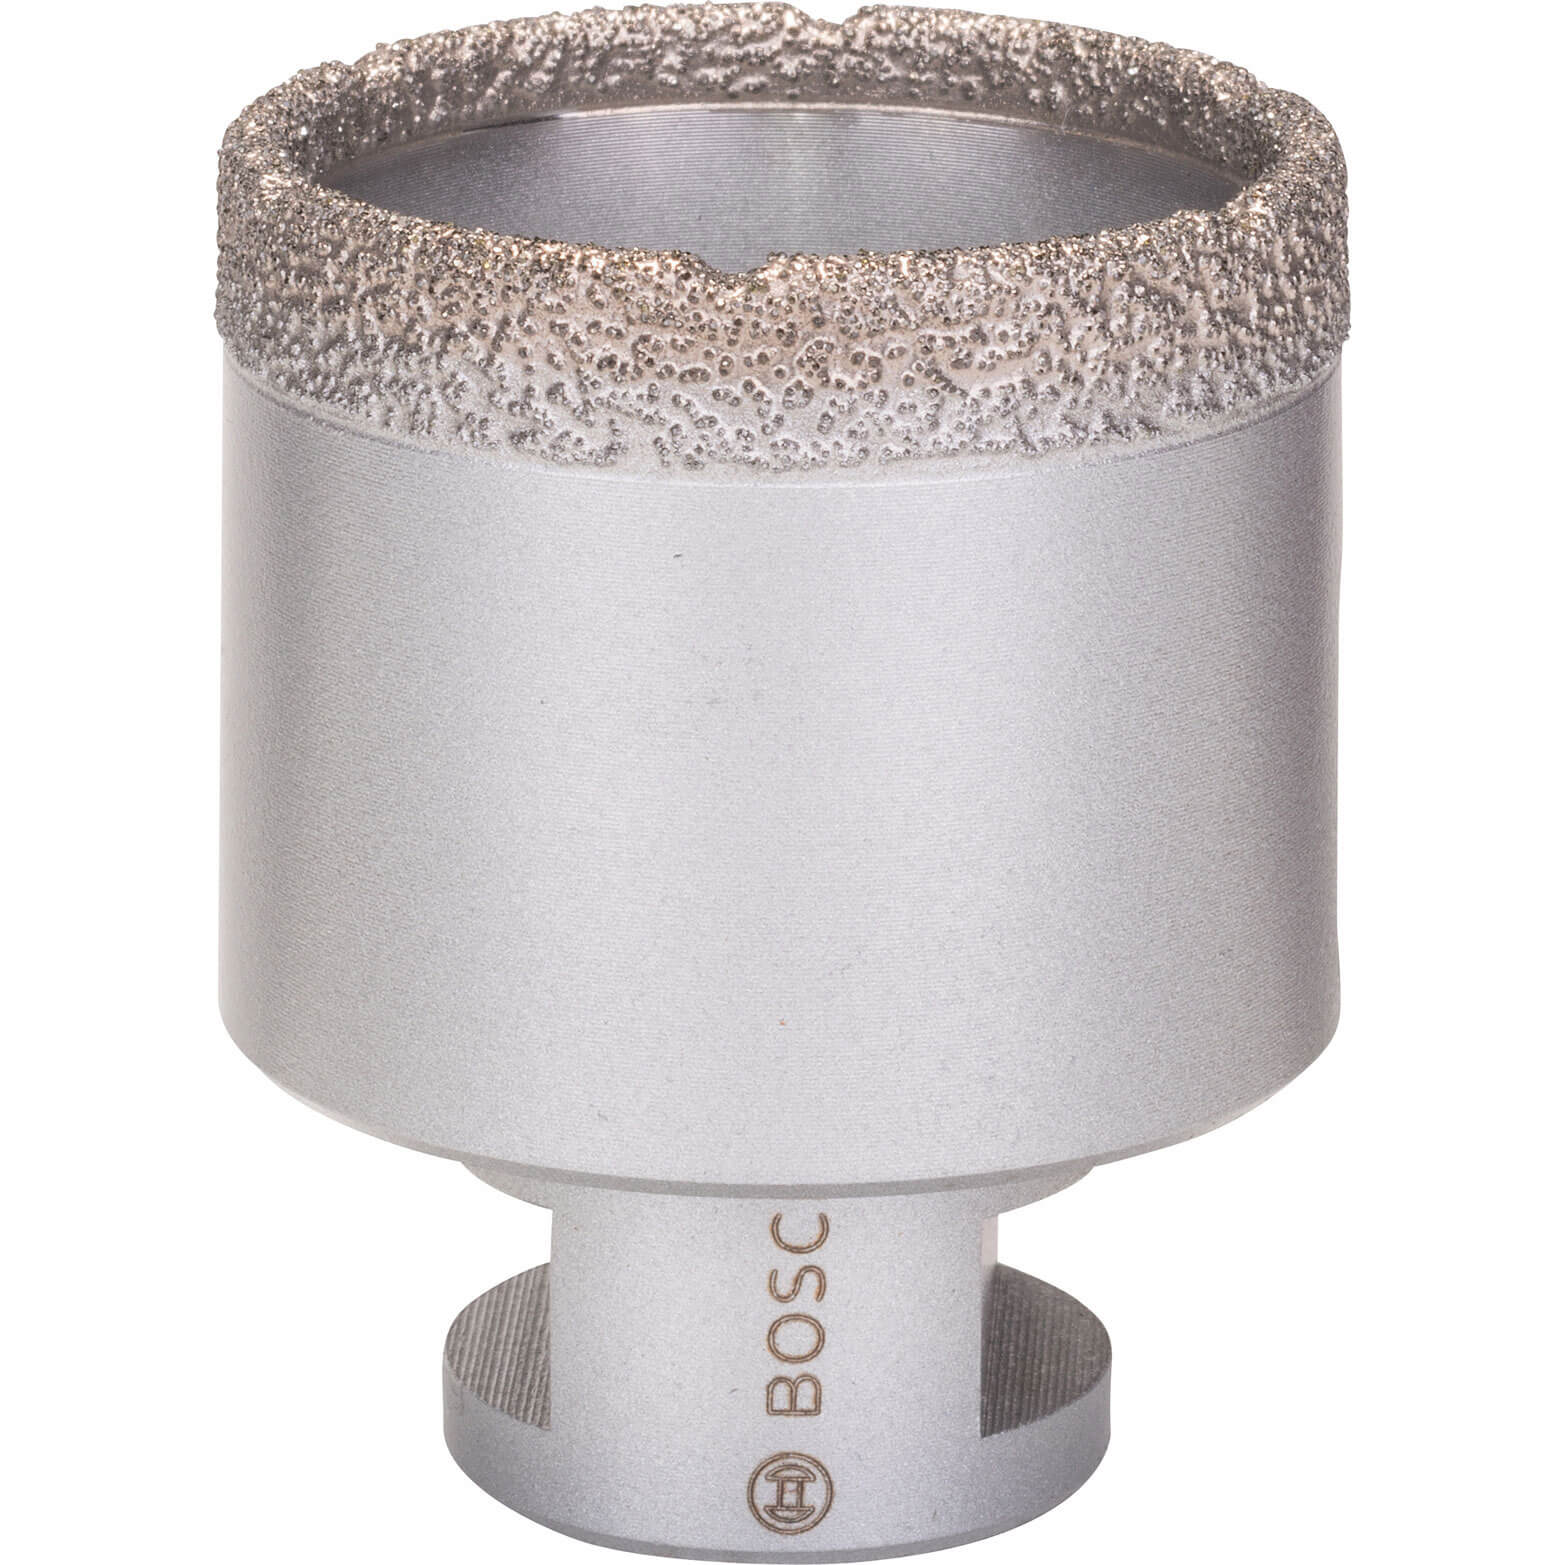 Bosch Angle Grinder Dry Diamond Hole Cutter For Ceramics 51mm